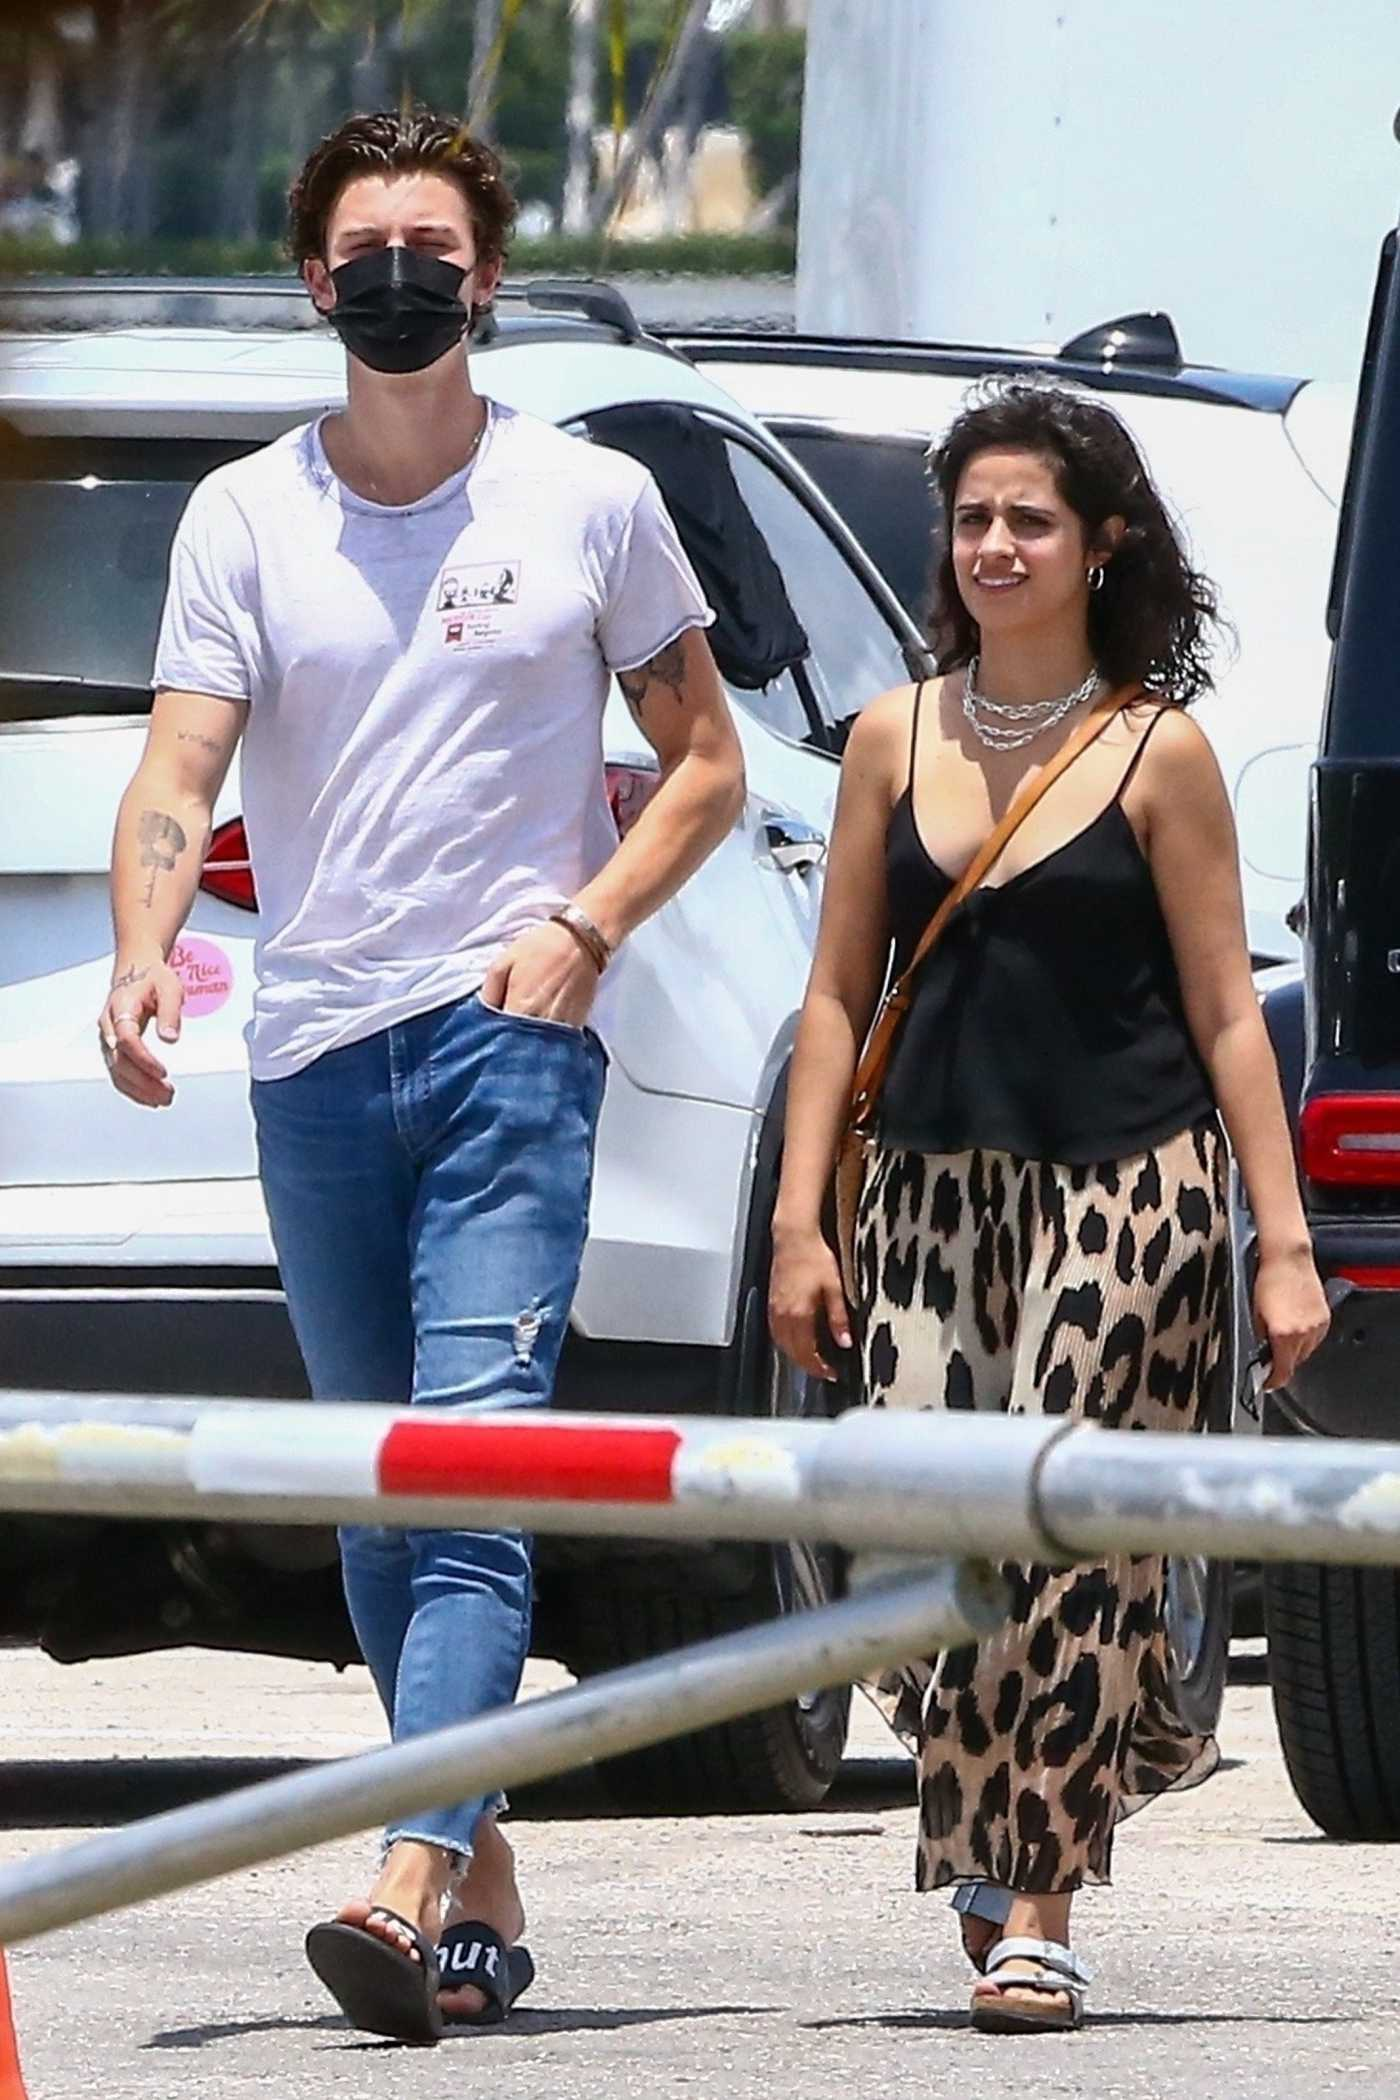 Camila Cabello in an Animal Print Skirt Was Seen Out with Shawn Mendes in Miami 04/29/2021